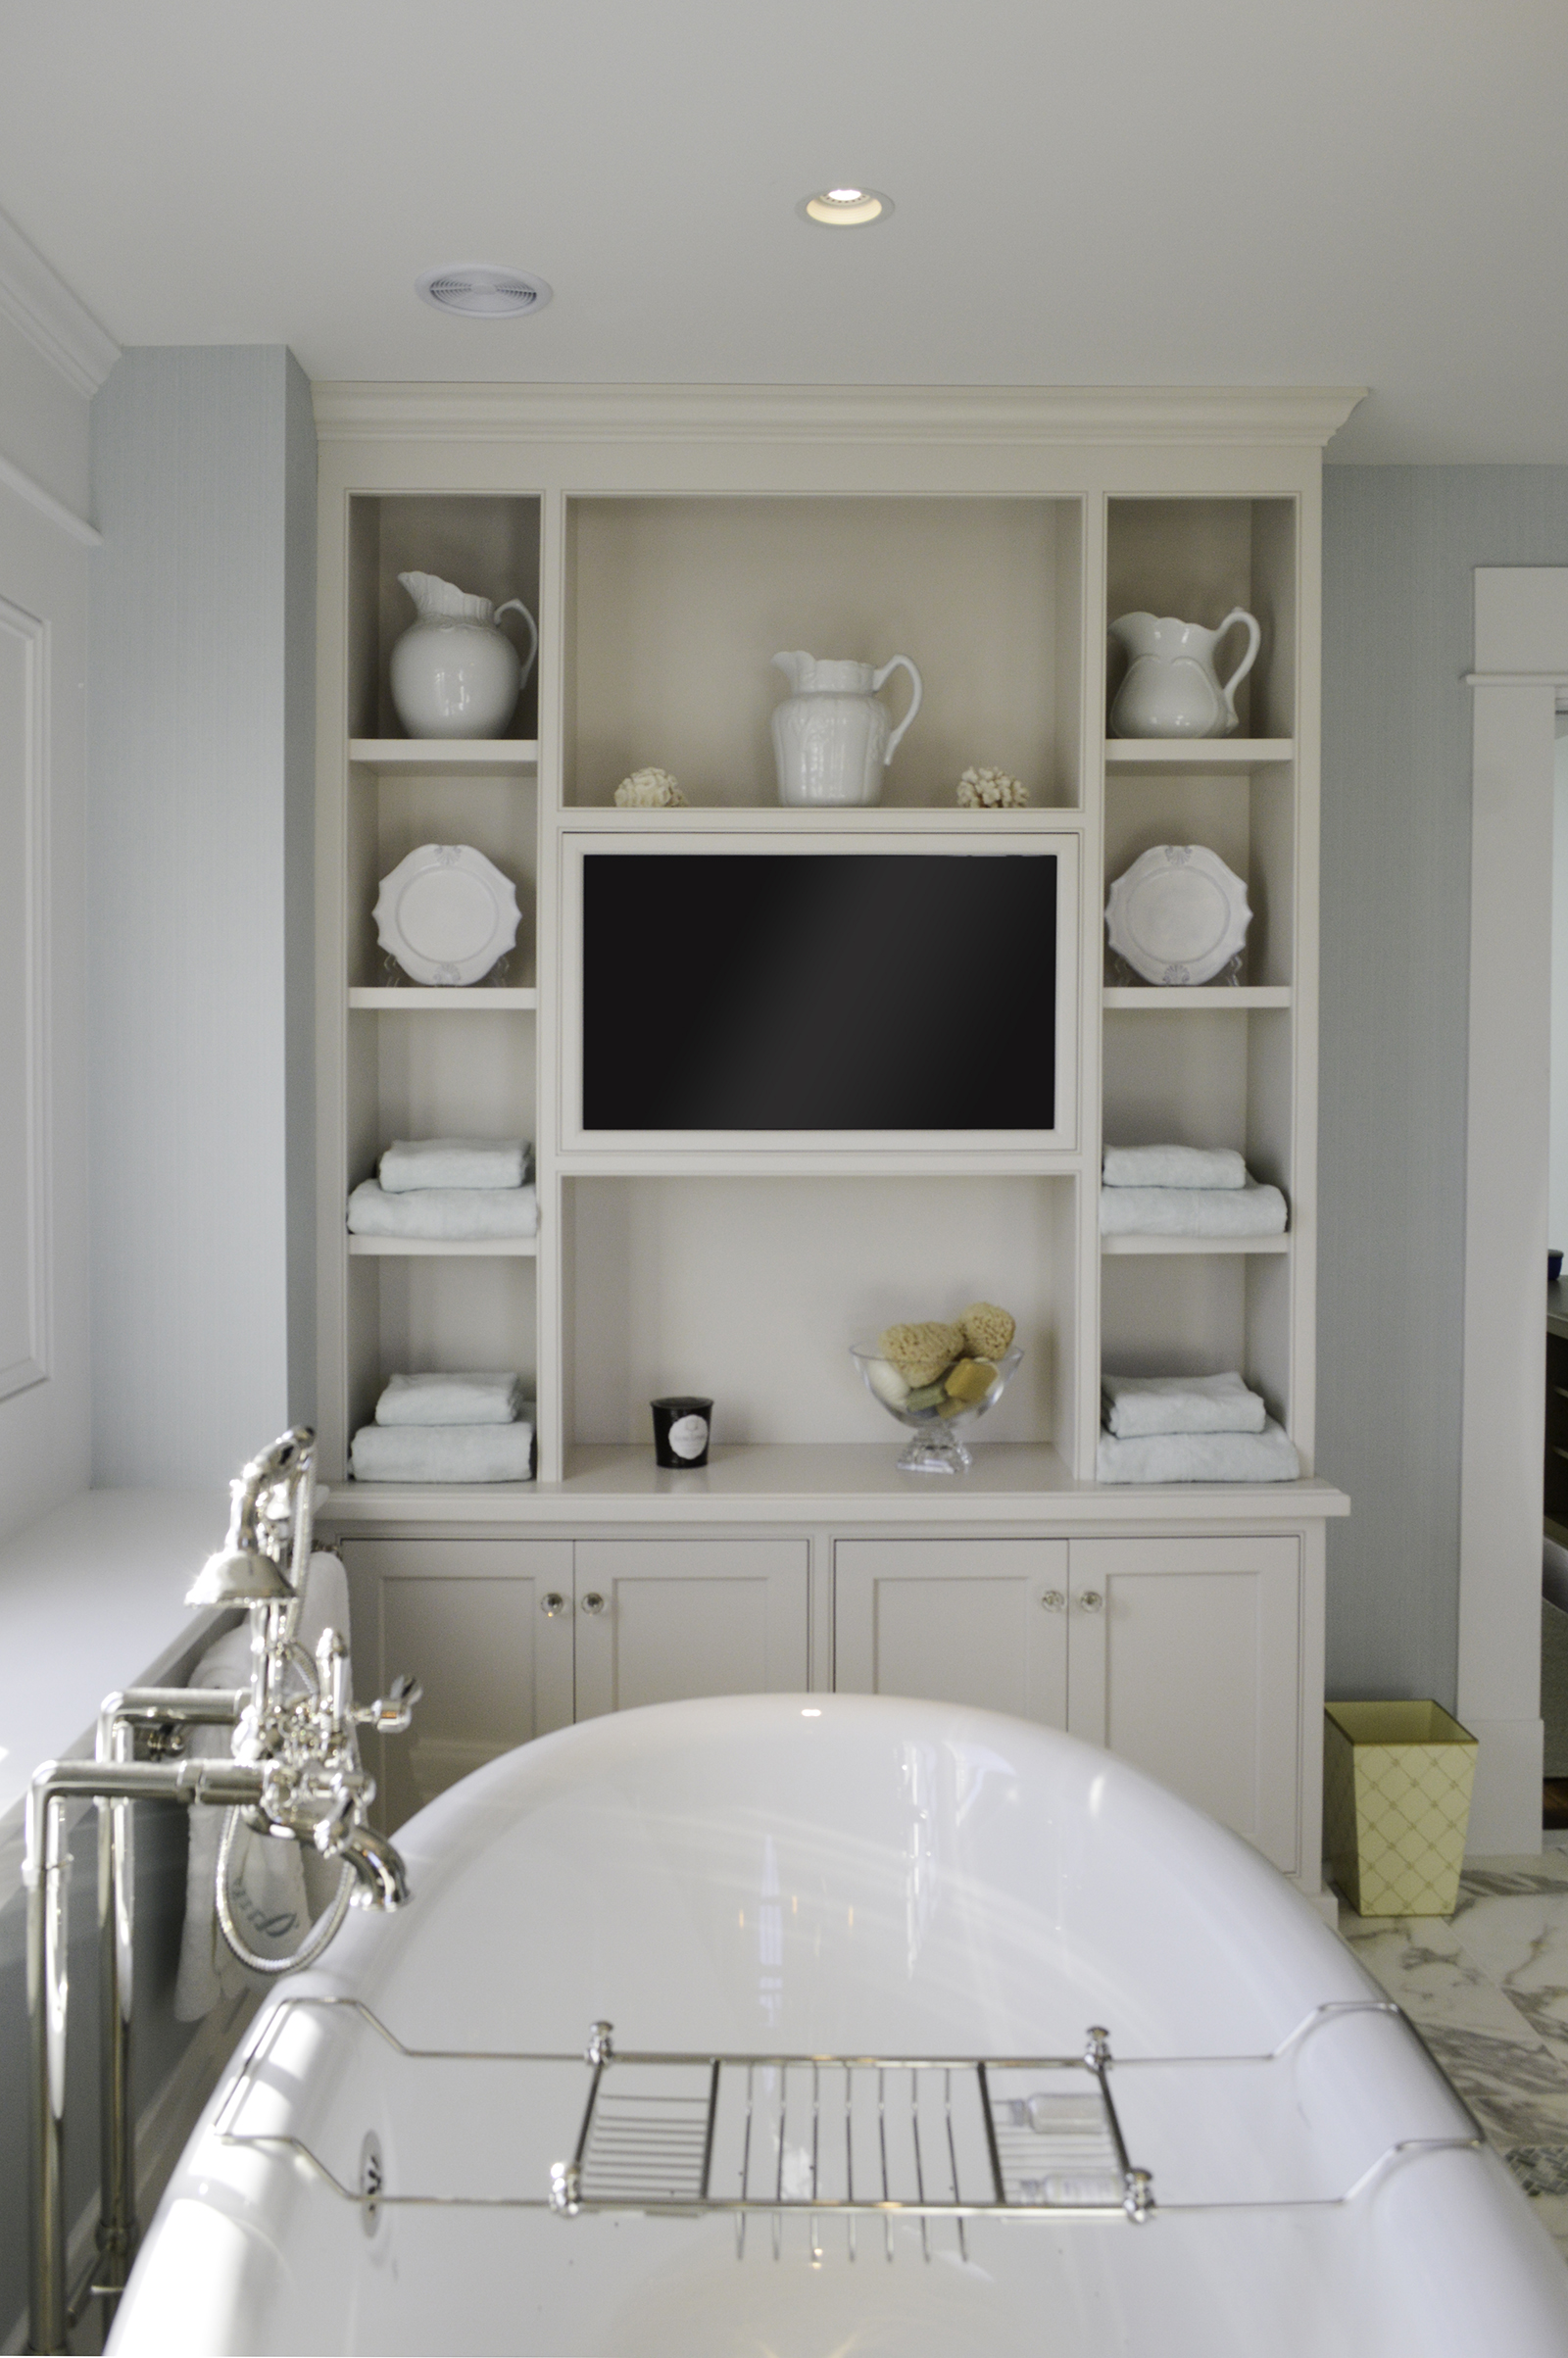 Master bathroom at Pine Point, Custom Home Construction in Southern Maine